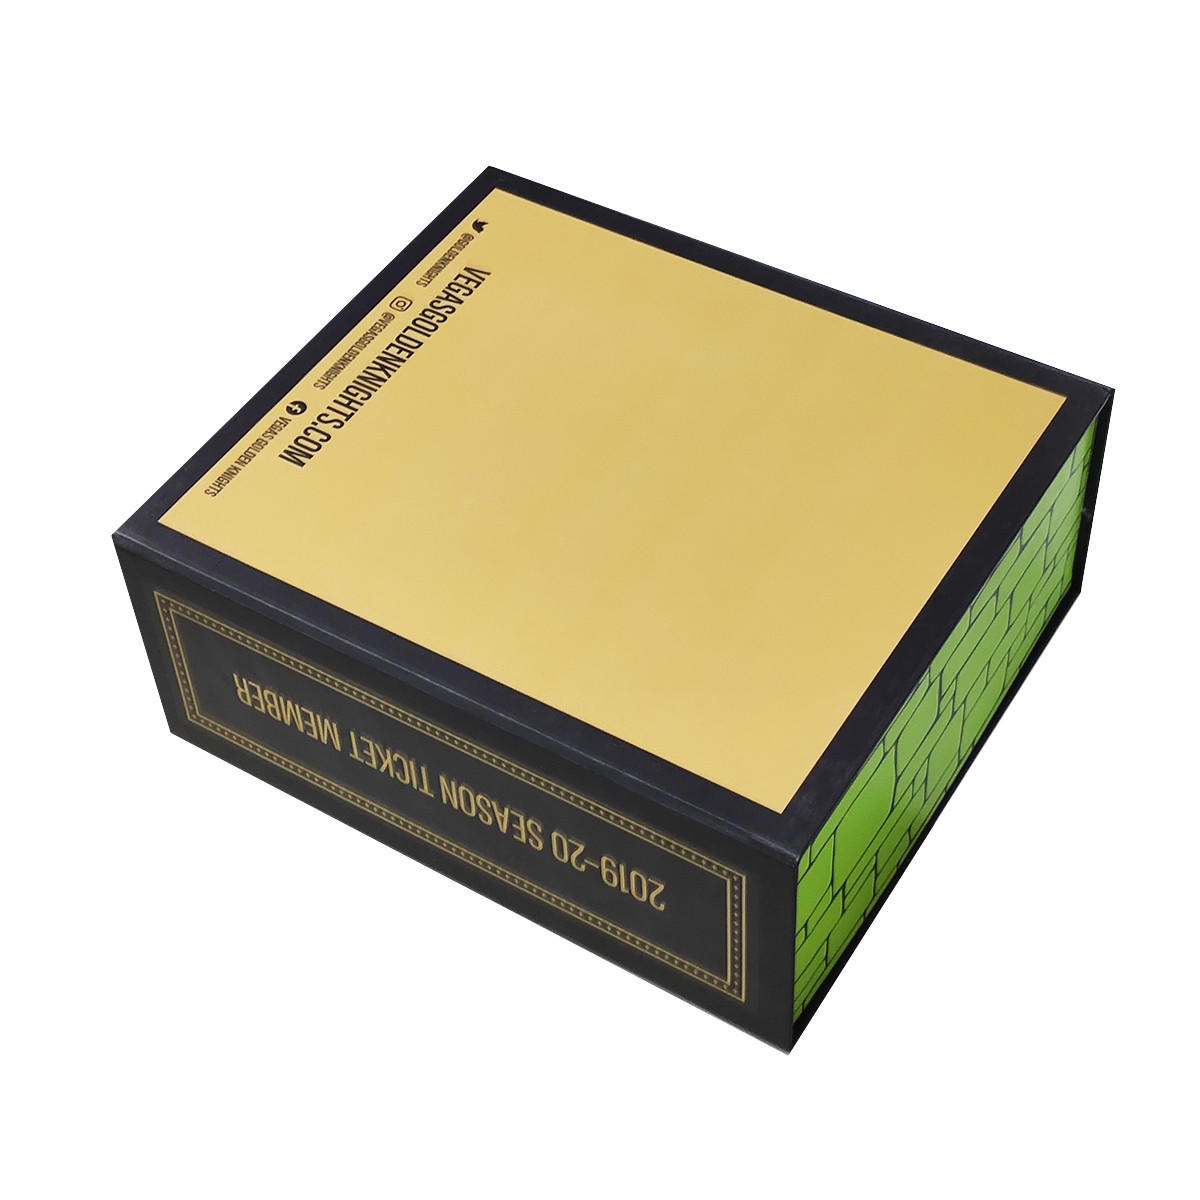 Professional packaging company high quality book shape gift box custom